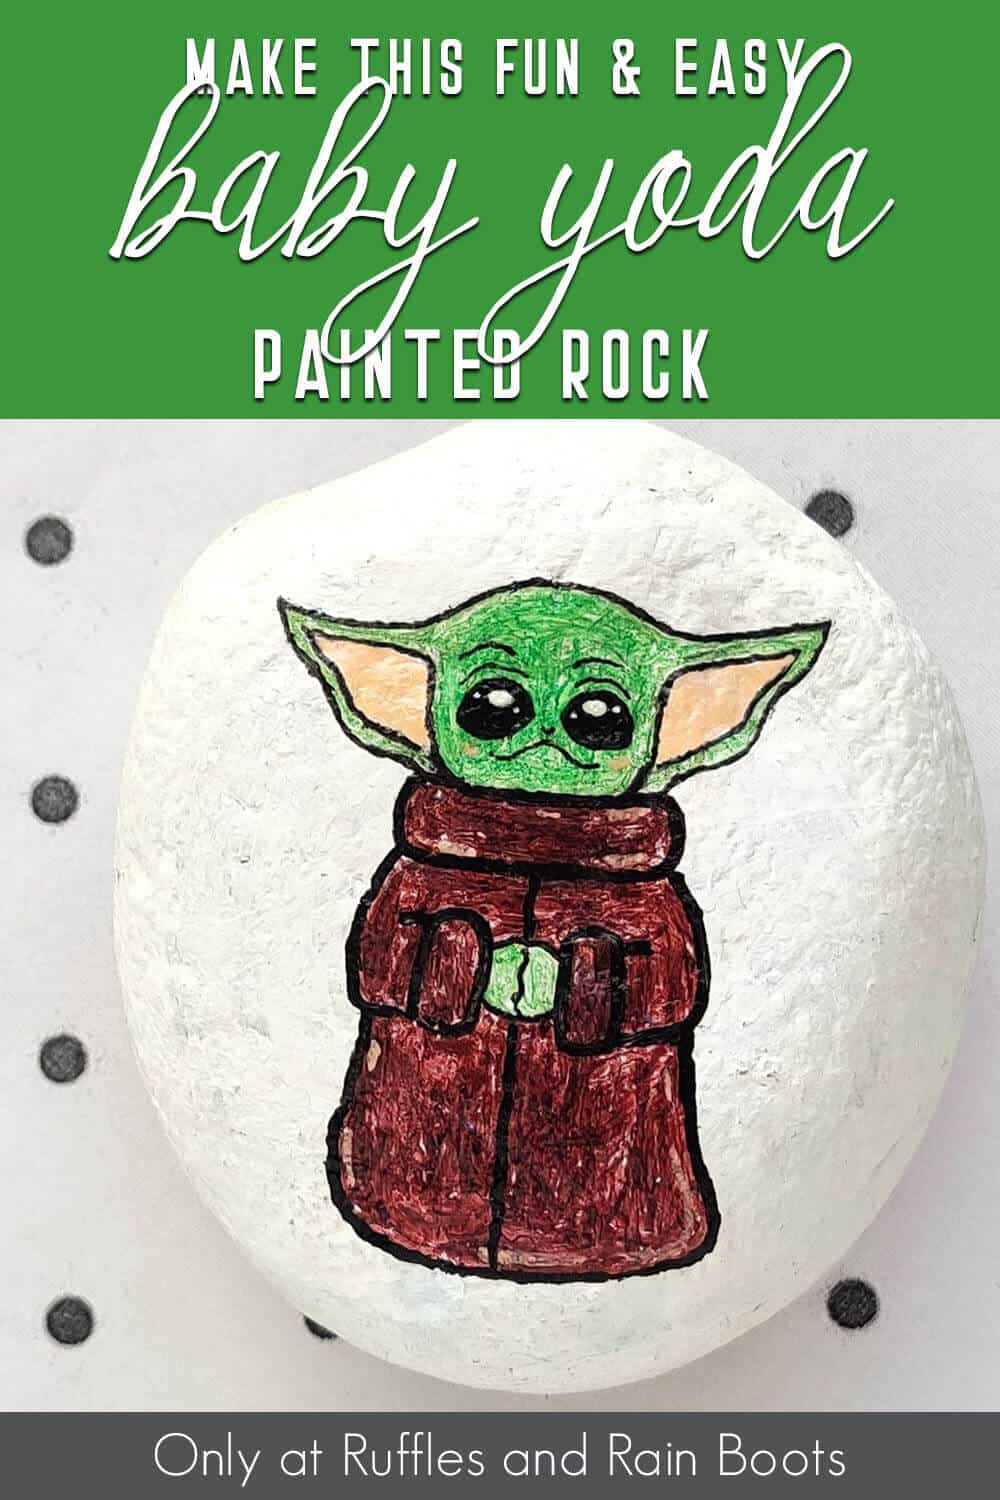 baby yoda kindness stone craft with text which reads make this fun & easy baby yoda painted rock